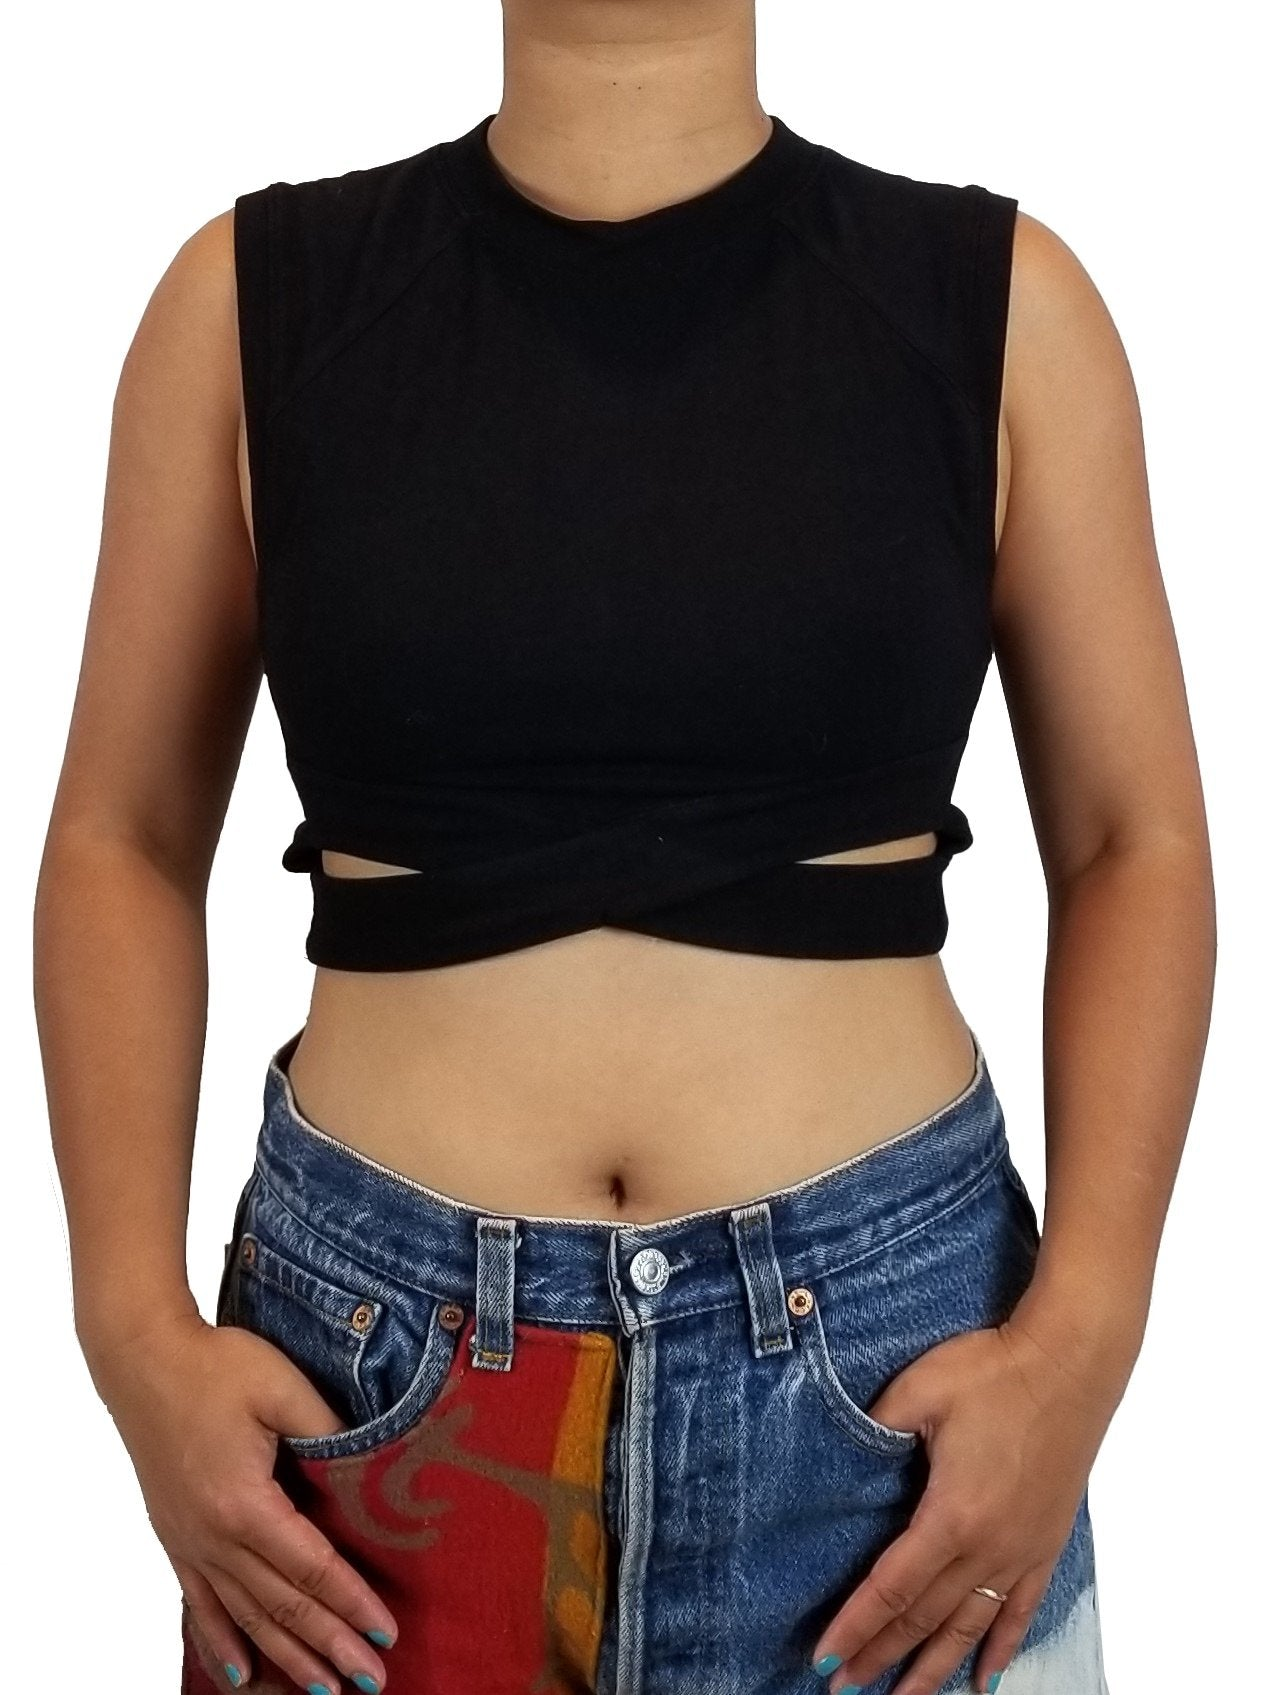 Silence & Noise Black Cutout Crop Top, Crop top with fashionable design., Black, 95% Cotton. 5% Spandex, women's Tops, women's Black Tops, Silence & Noise women's Tops, black Crop top, cute black cutout top, cropped top silhoutte with banded crew-neck and armholes